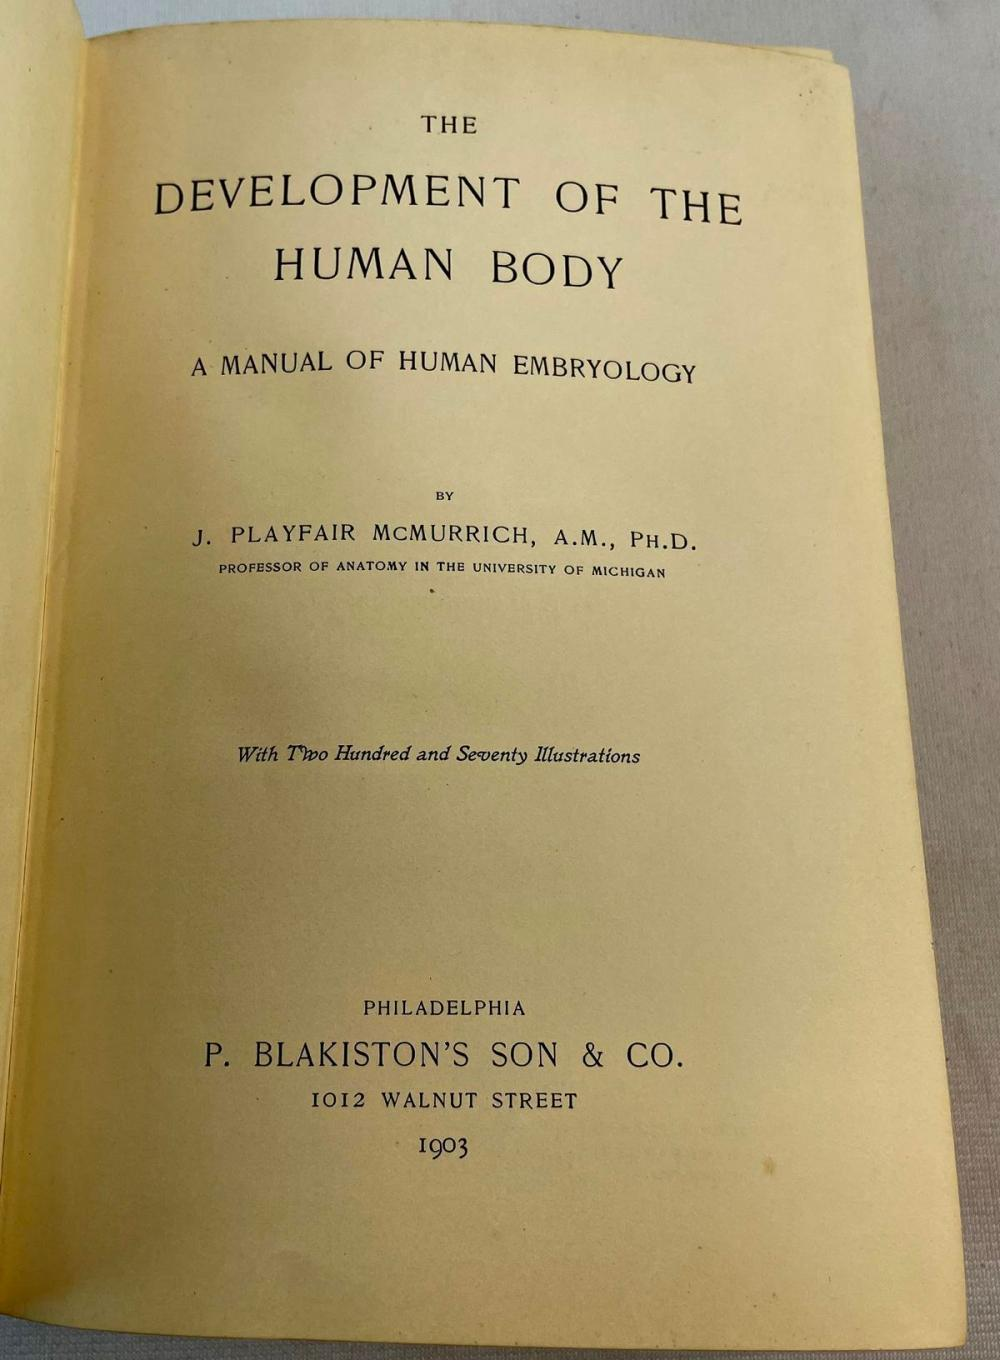 1903 The Development of the Human Body by J. Playfair McMurrich, Ph. D. Illustrated FIRST EDITION